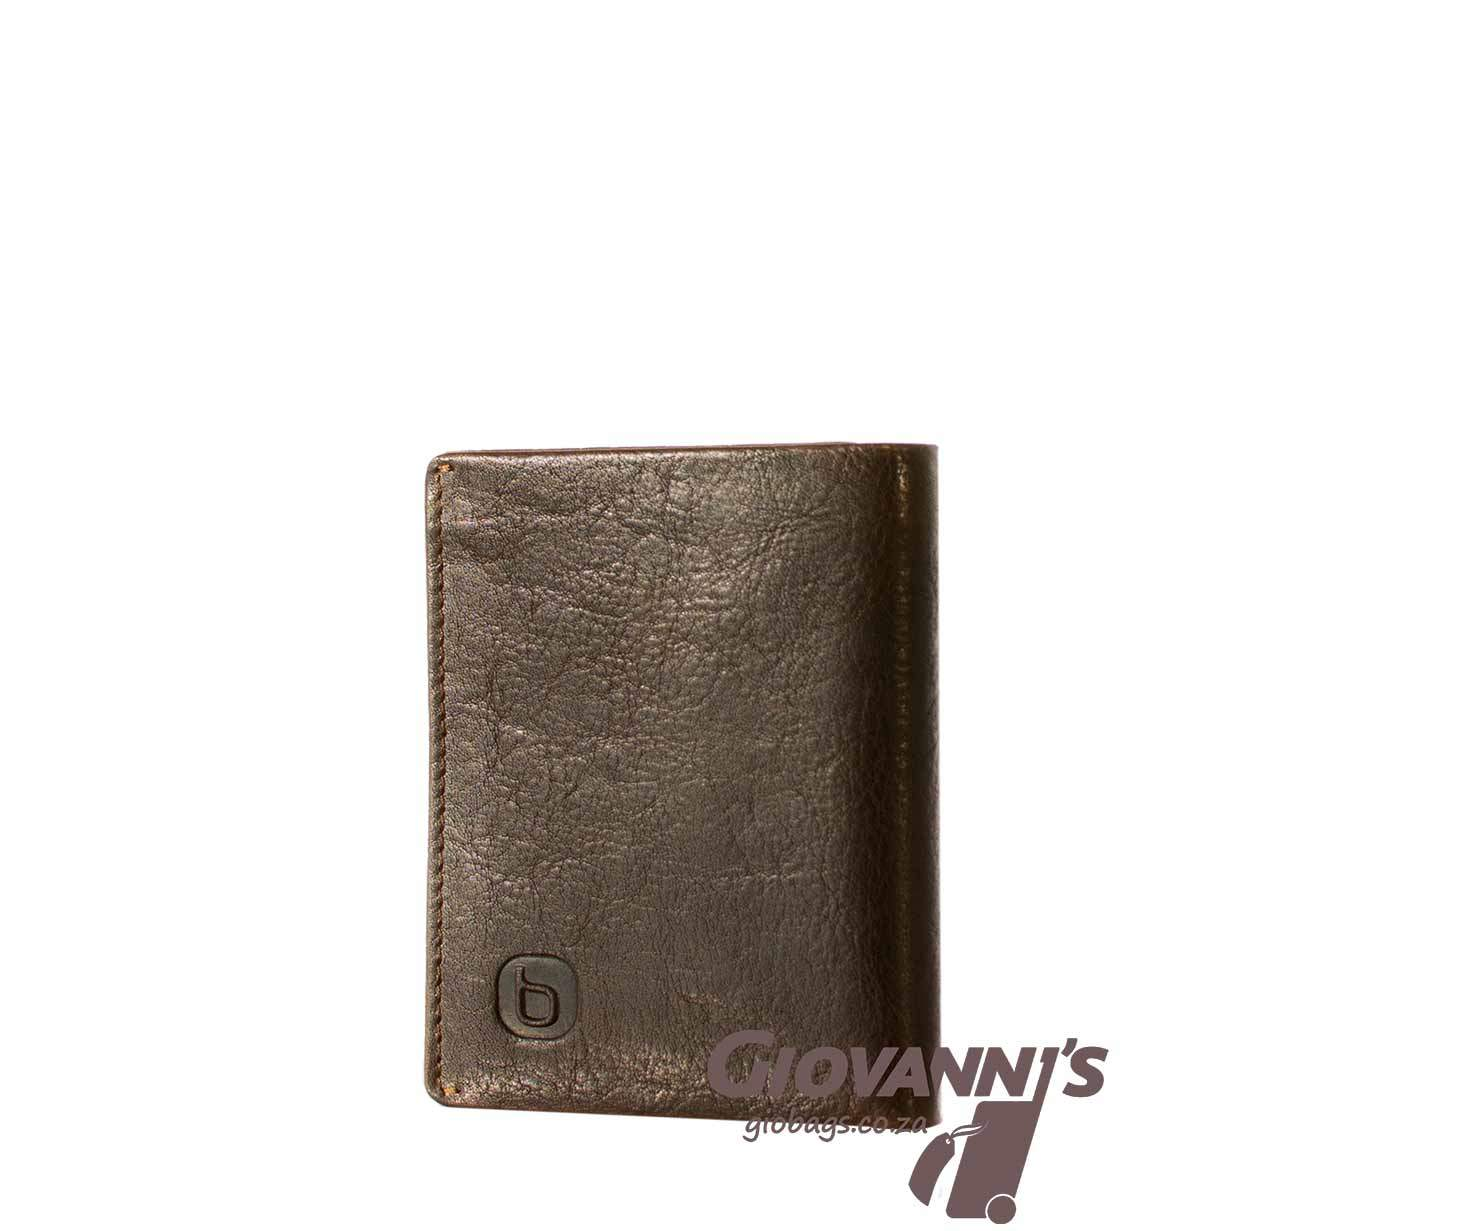 Giobags Brando Leather East Wood Tri Fold Leather Wallet